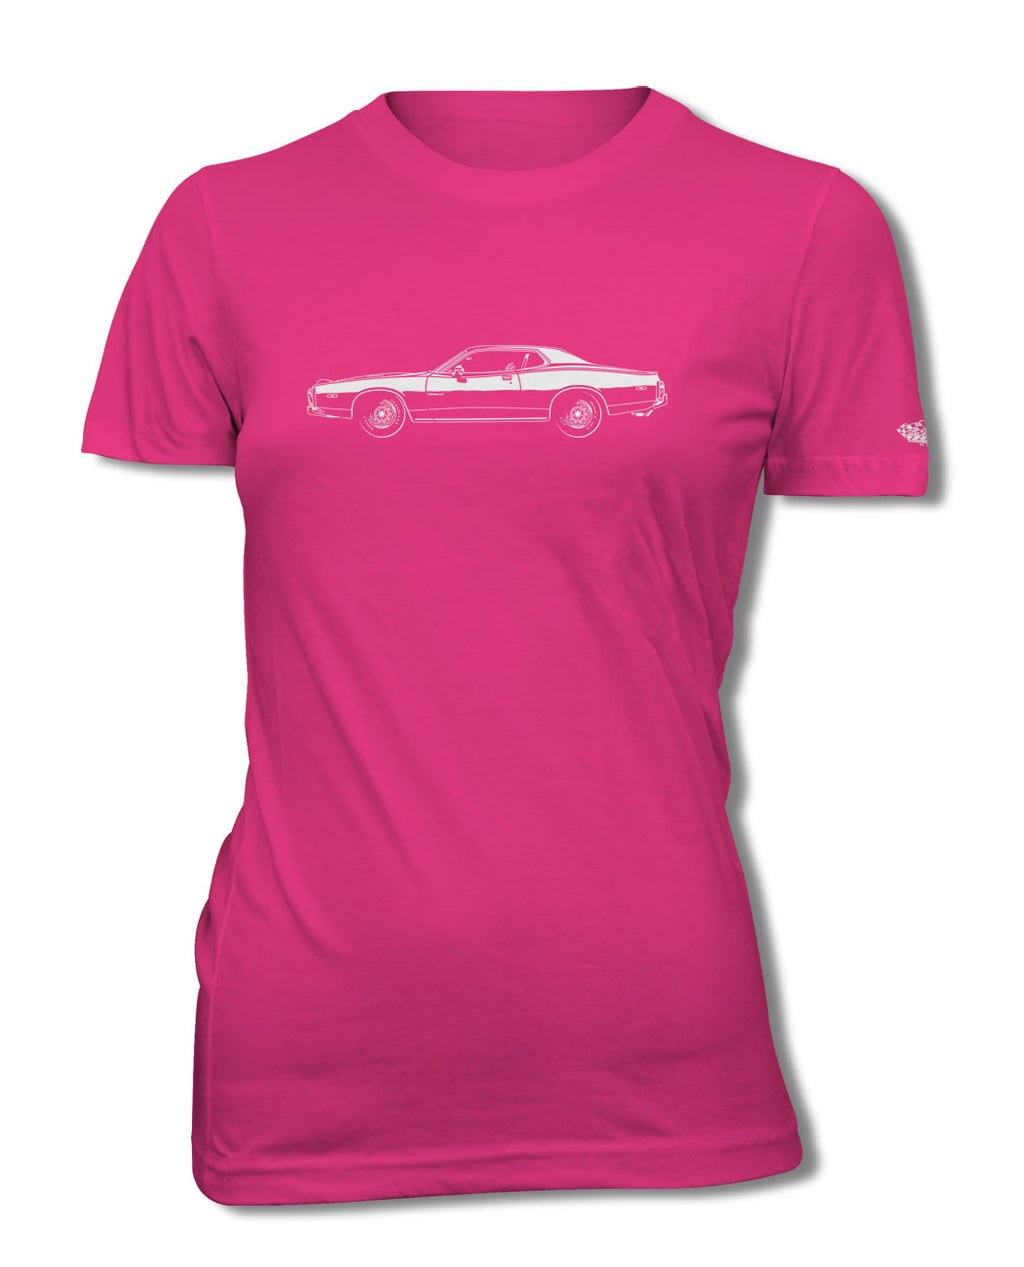 1973 Dodge Charger Rallye 440 Magnum Coupe T-Shirt - Women - Side View